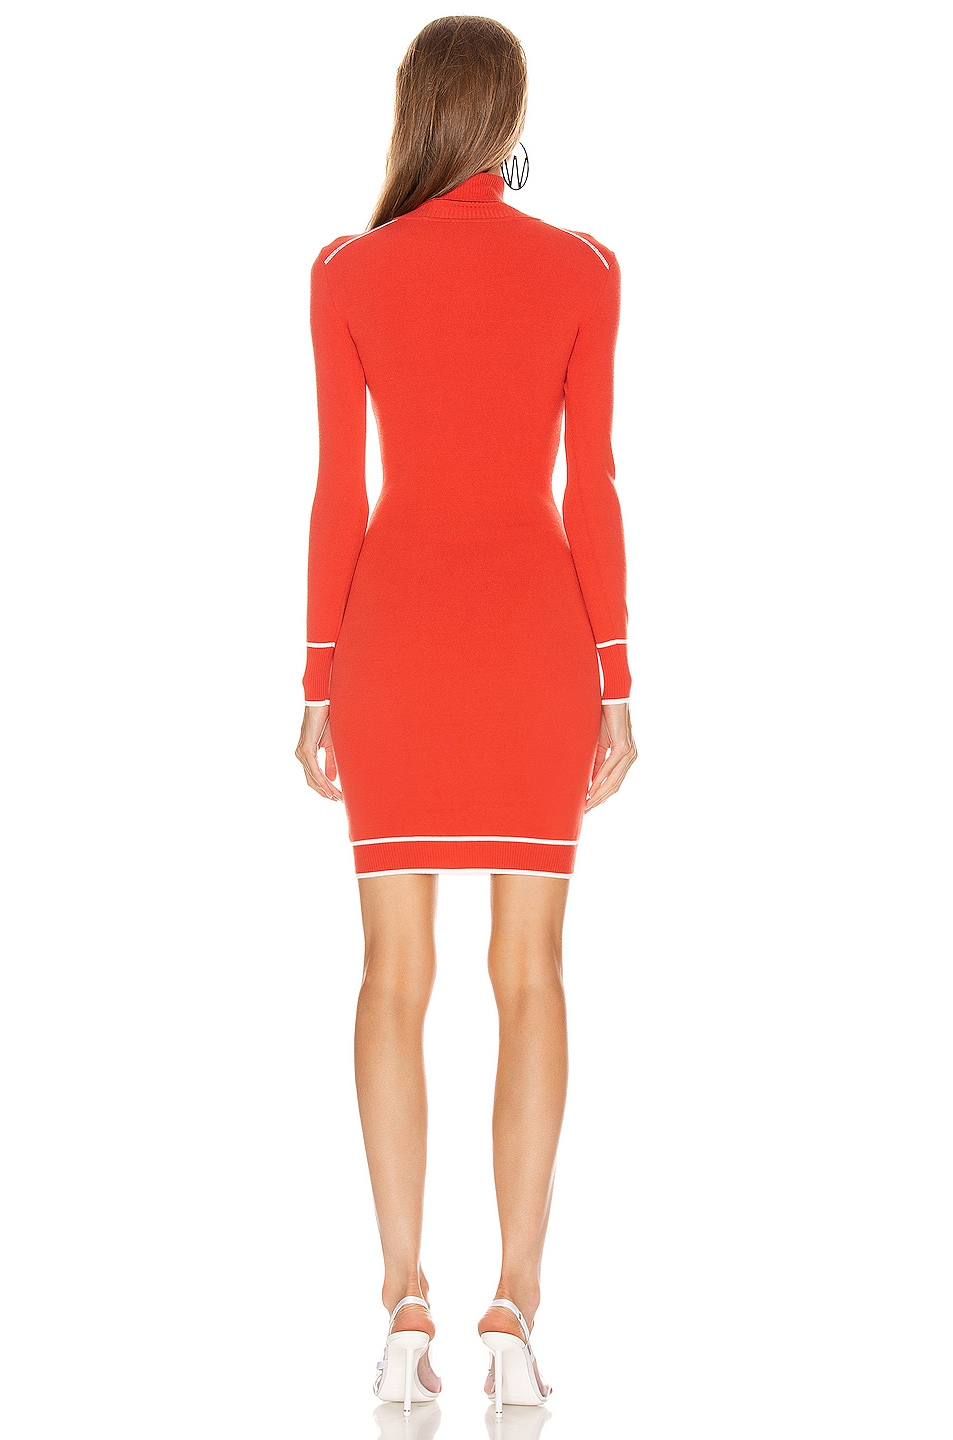 Image 3 of OFF-WHITE Knit Athletic Turtleneck Dress in Red & White